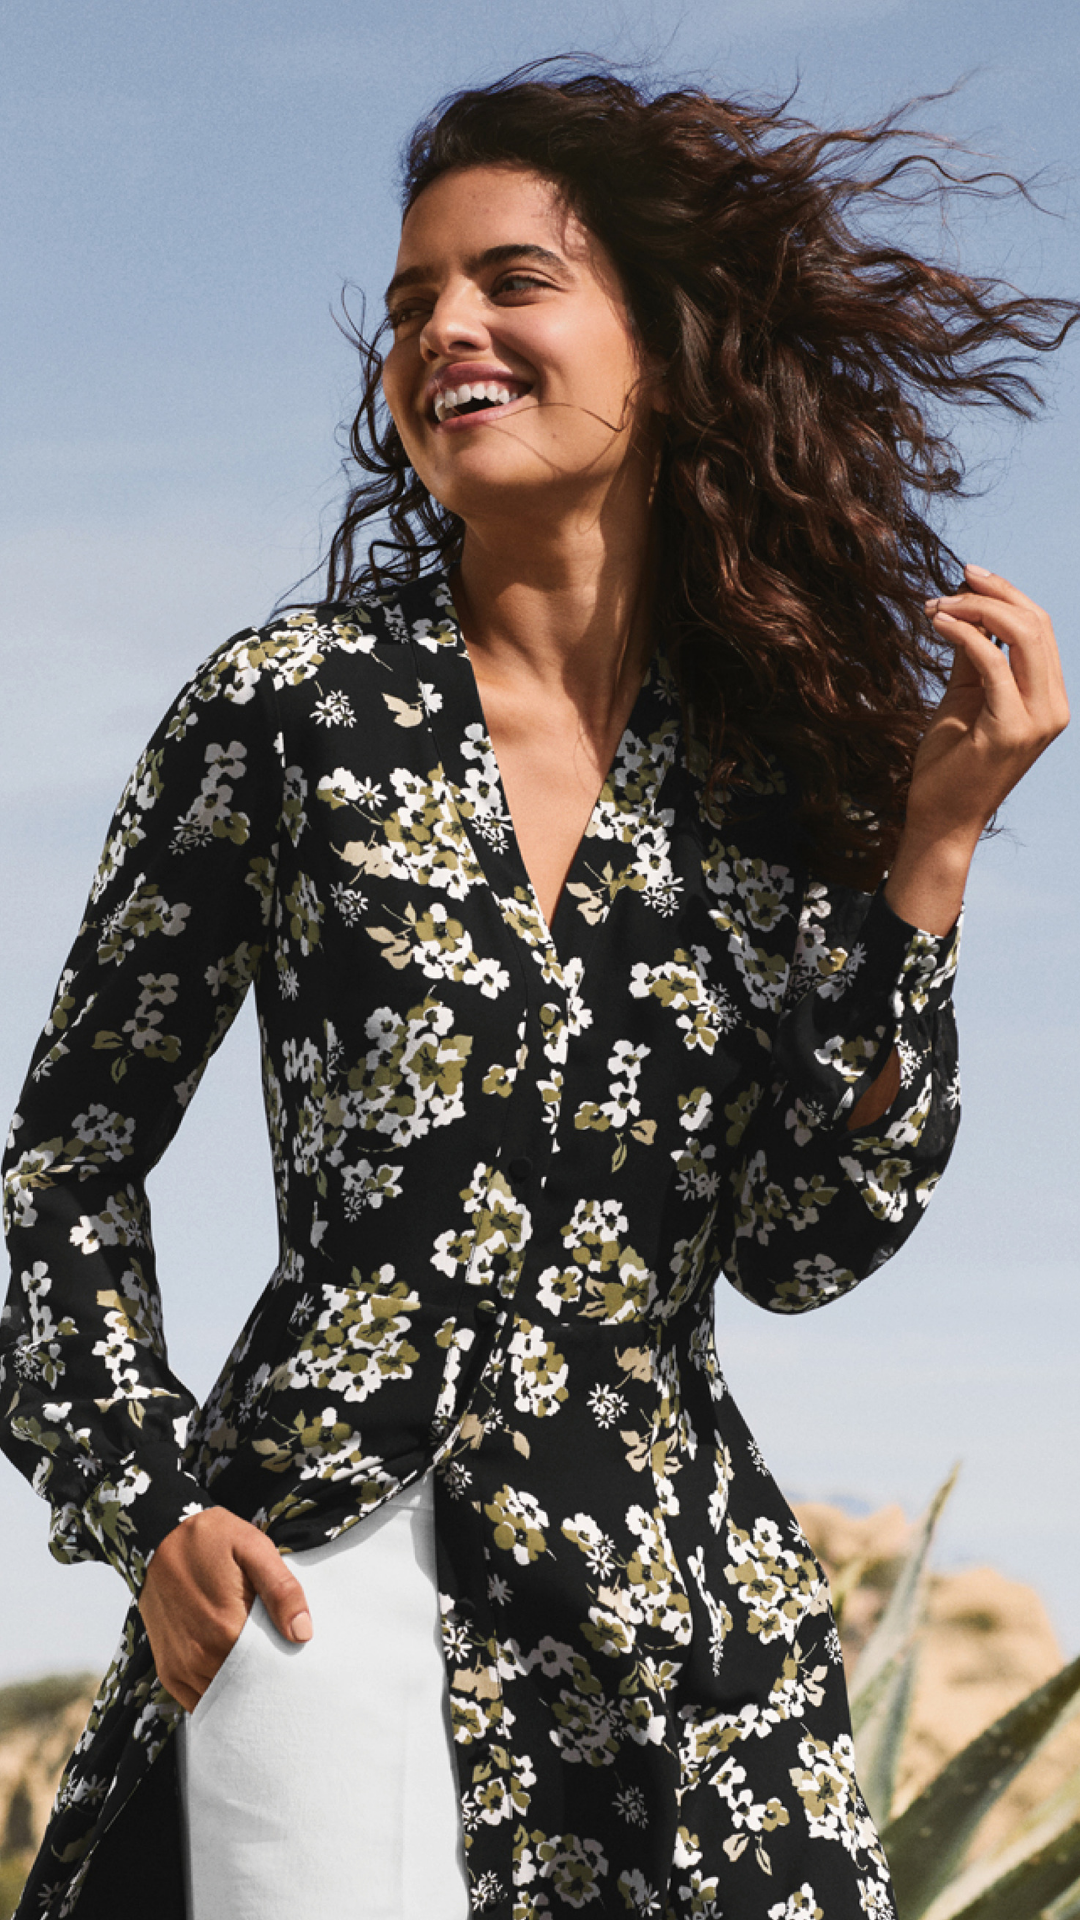 The Spring 2019 Middle East Edit by Michael Kors